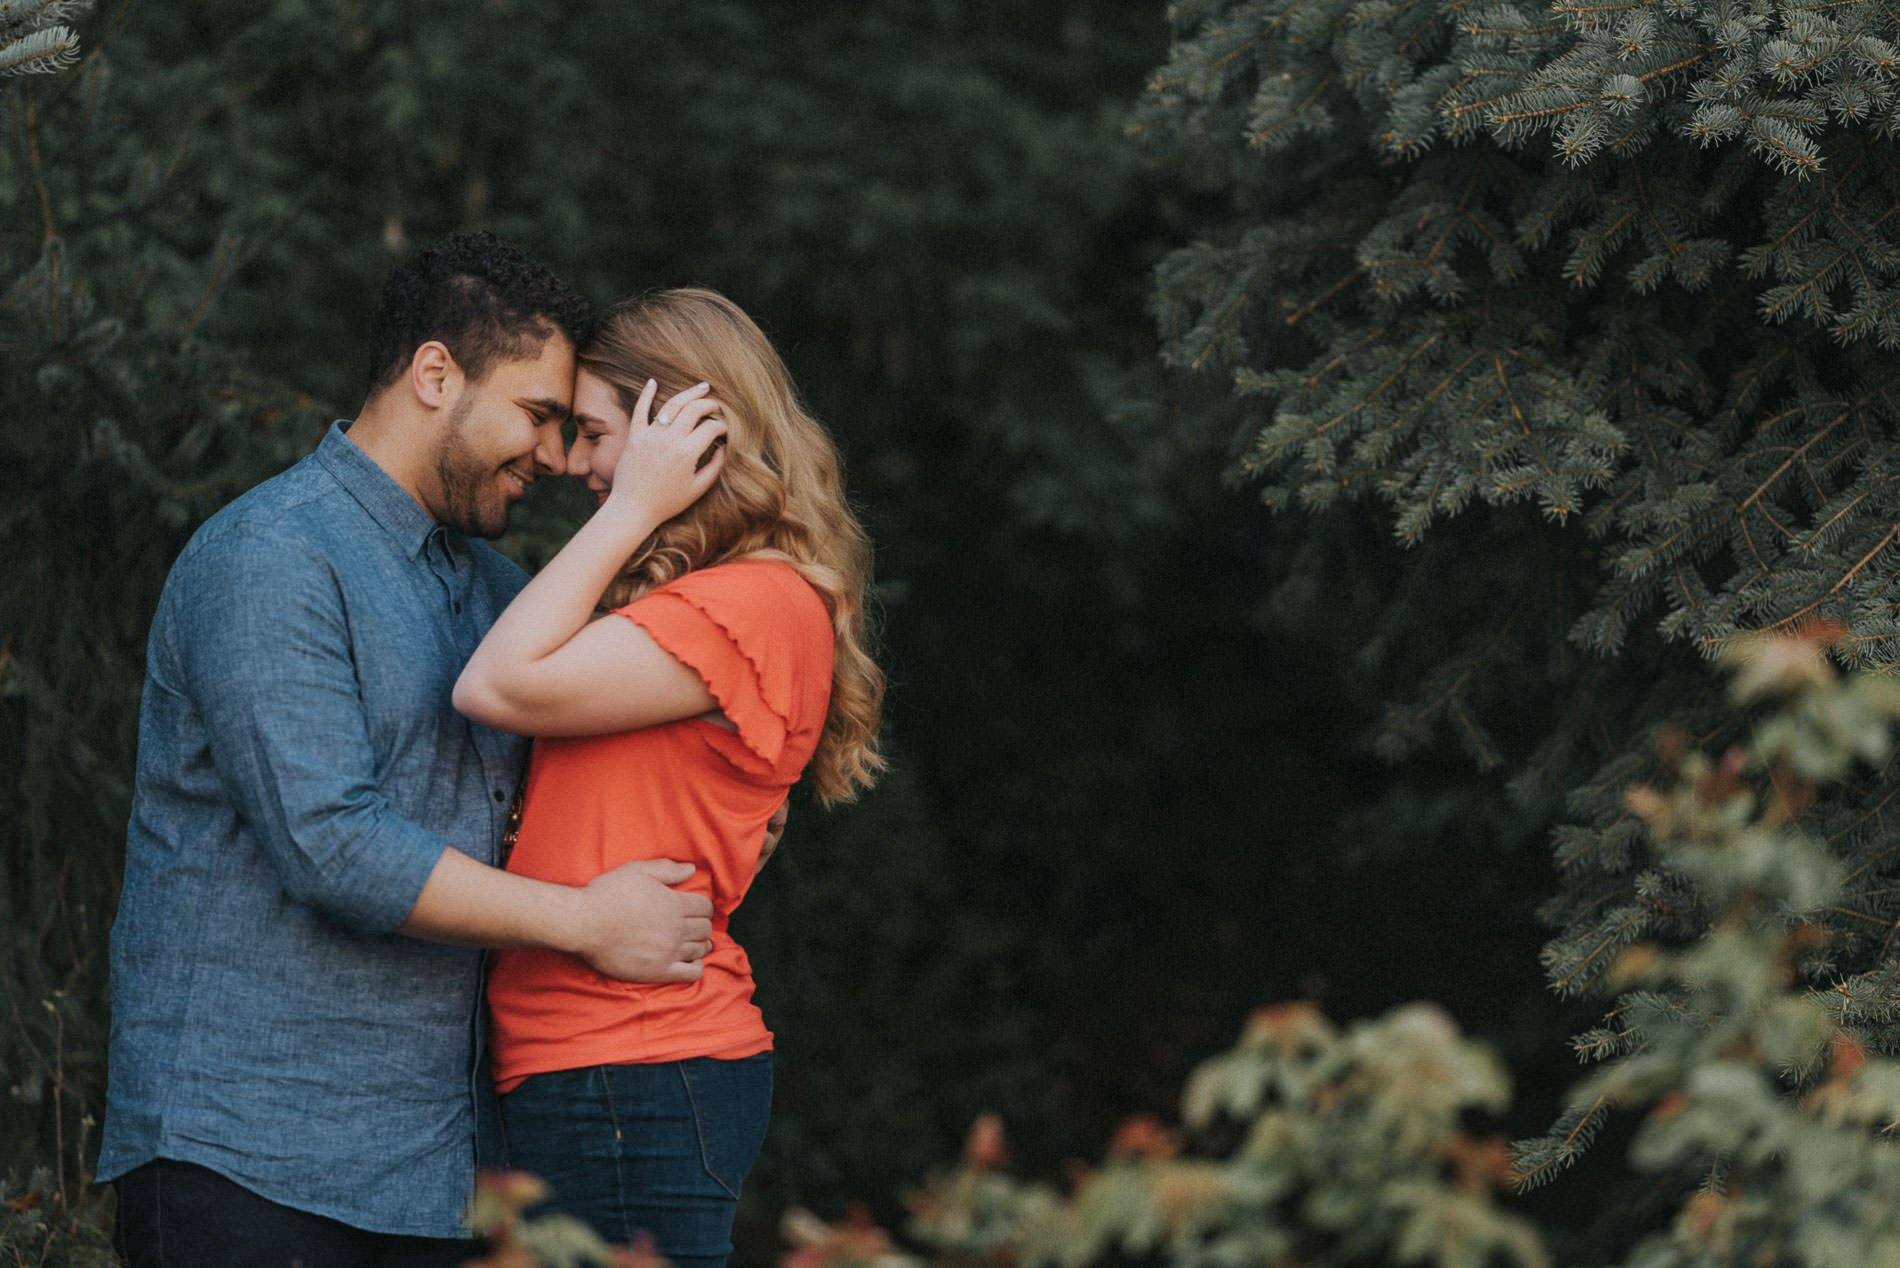 An engaged couple snuggling with foreheads touching and pines in the background for Salt Lake City portrait photography